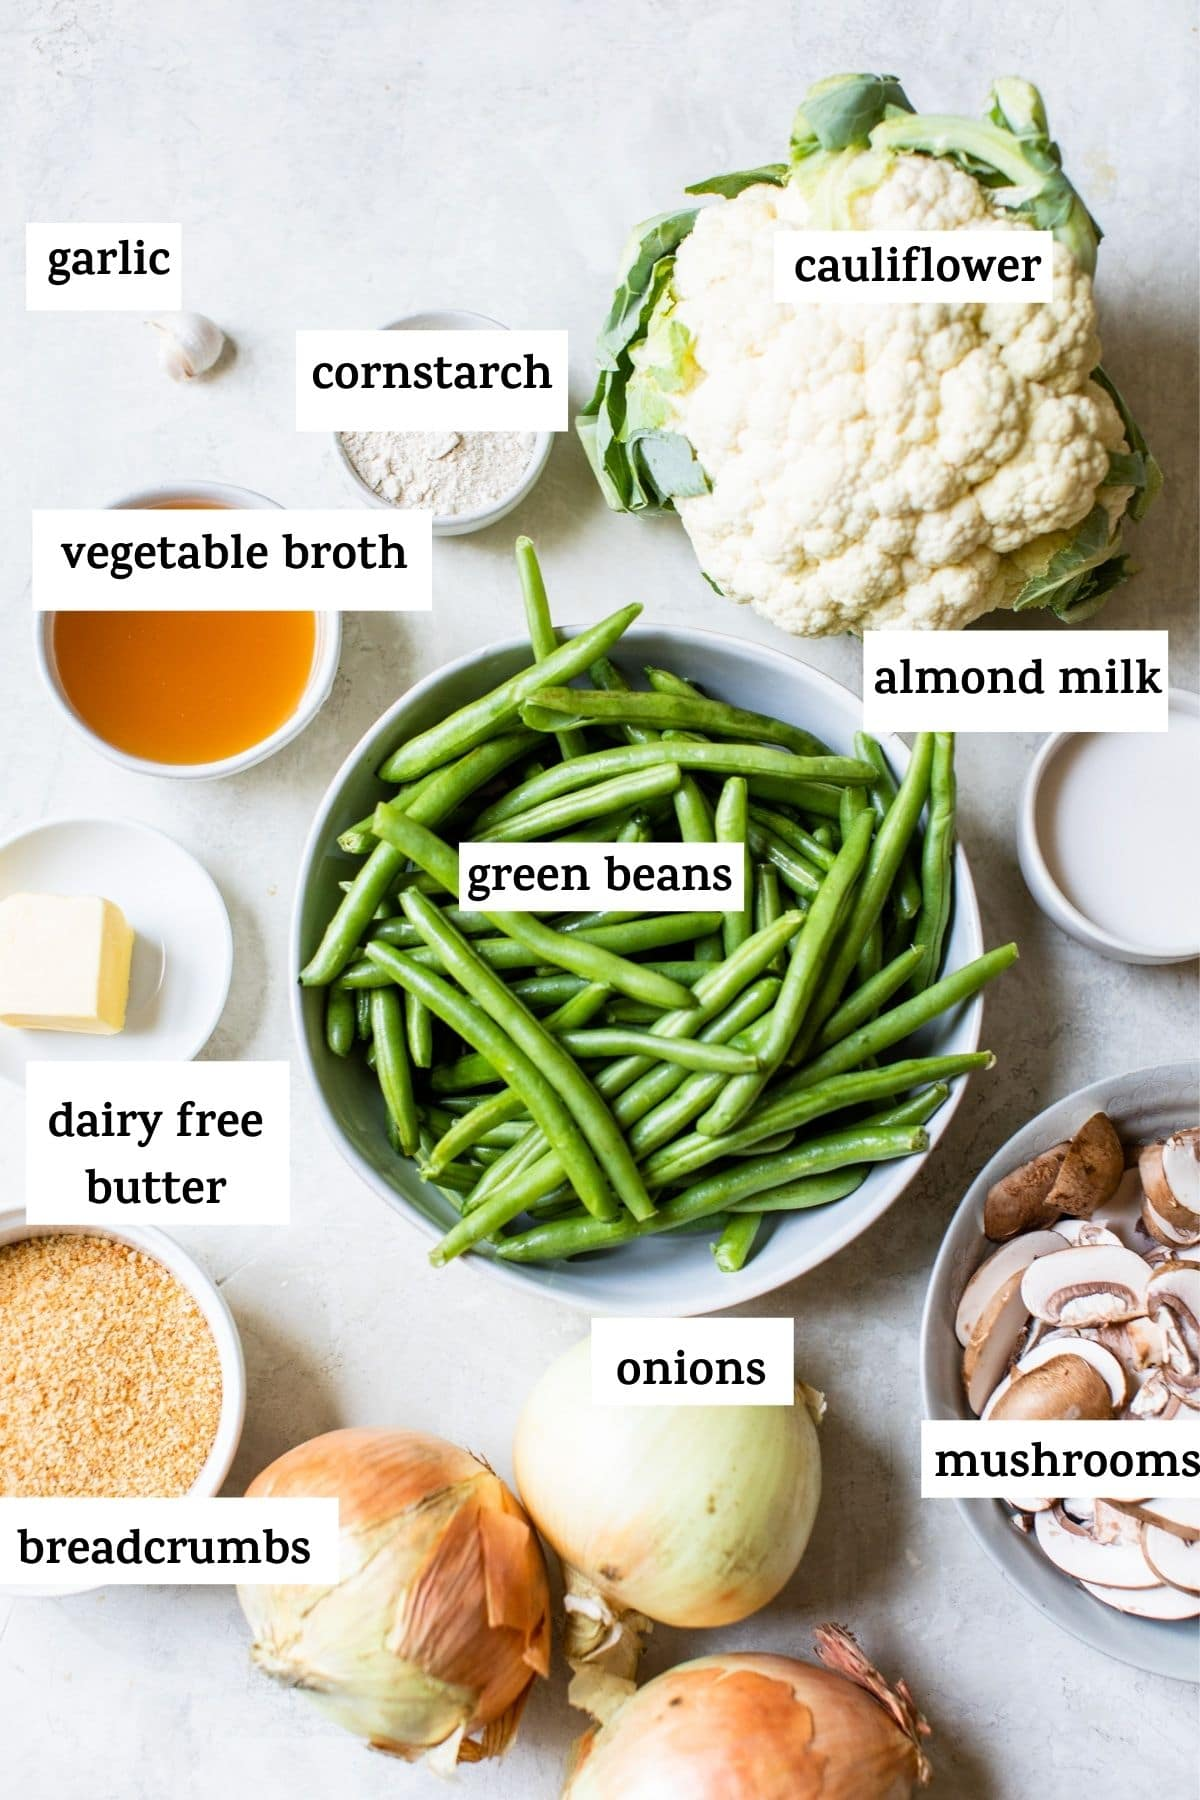 ingredients to make green bean casserole